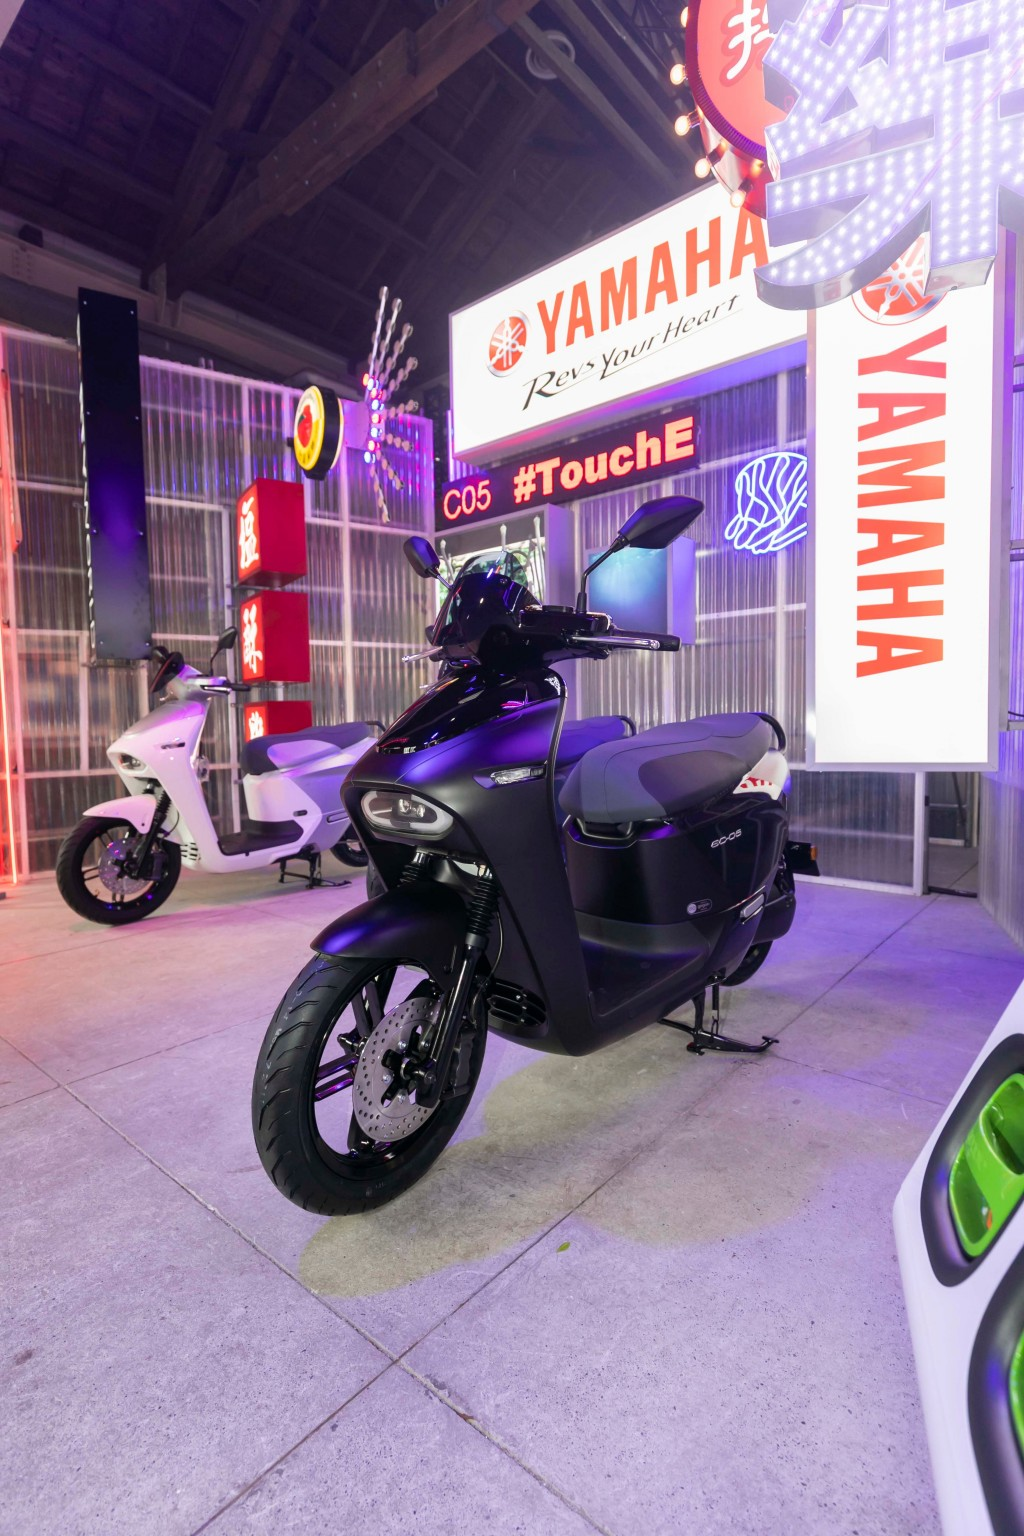 Yamaha releases new electric scooter made by Taiwan's Gogoro